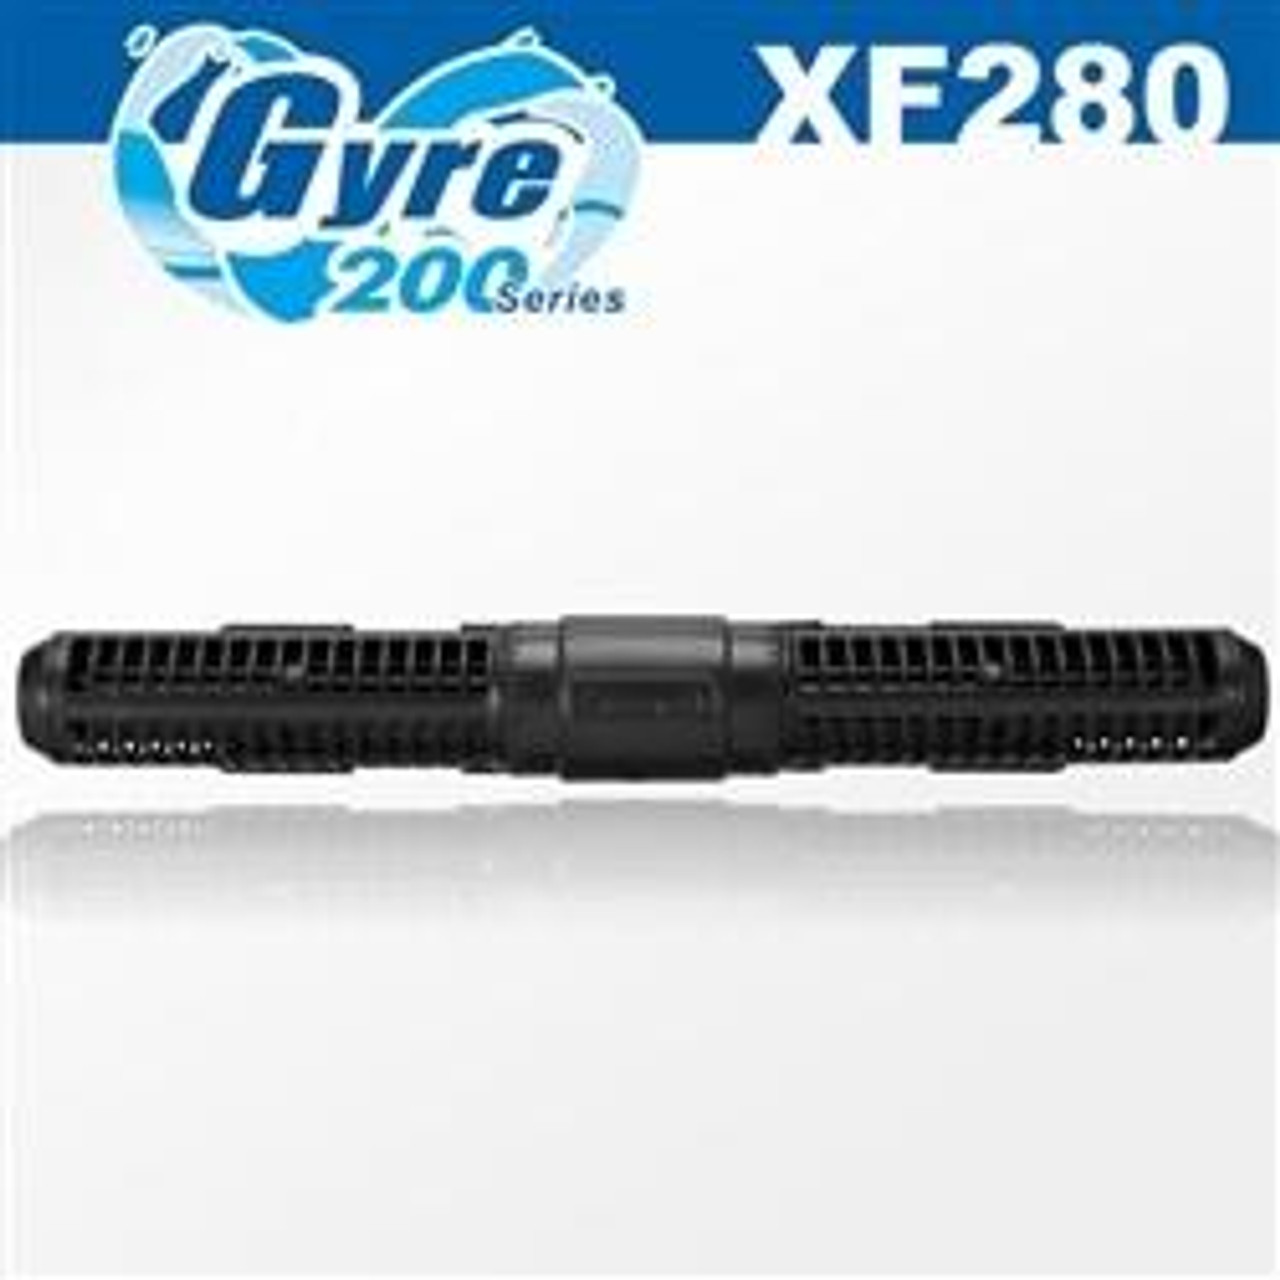 MAXSPECT XF280 ADVANCED CONTROLLER